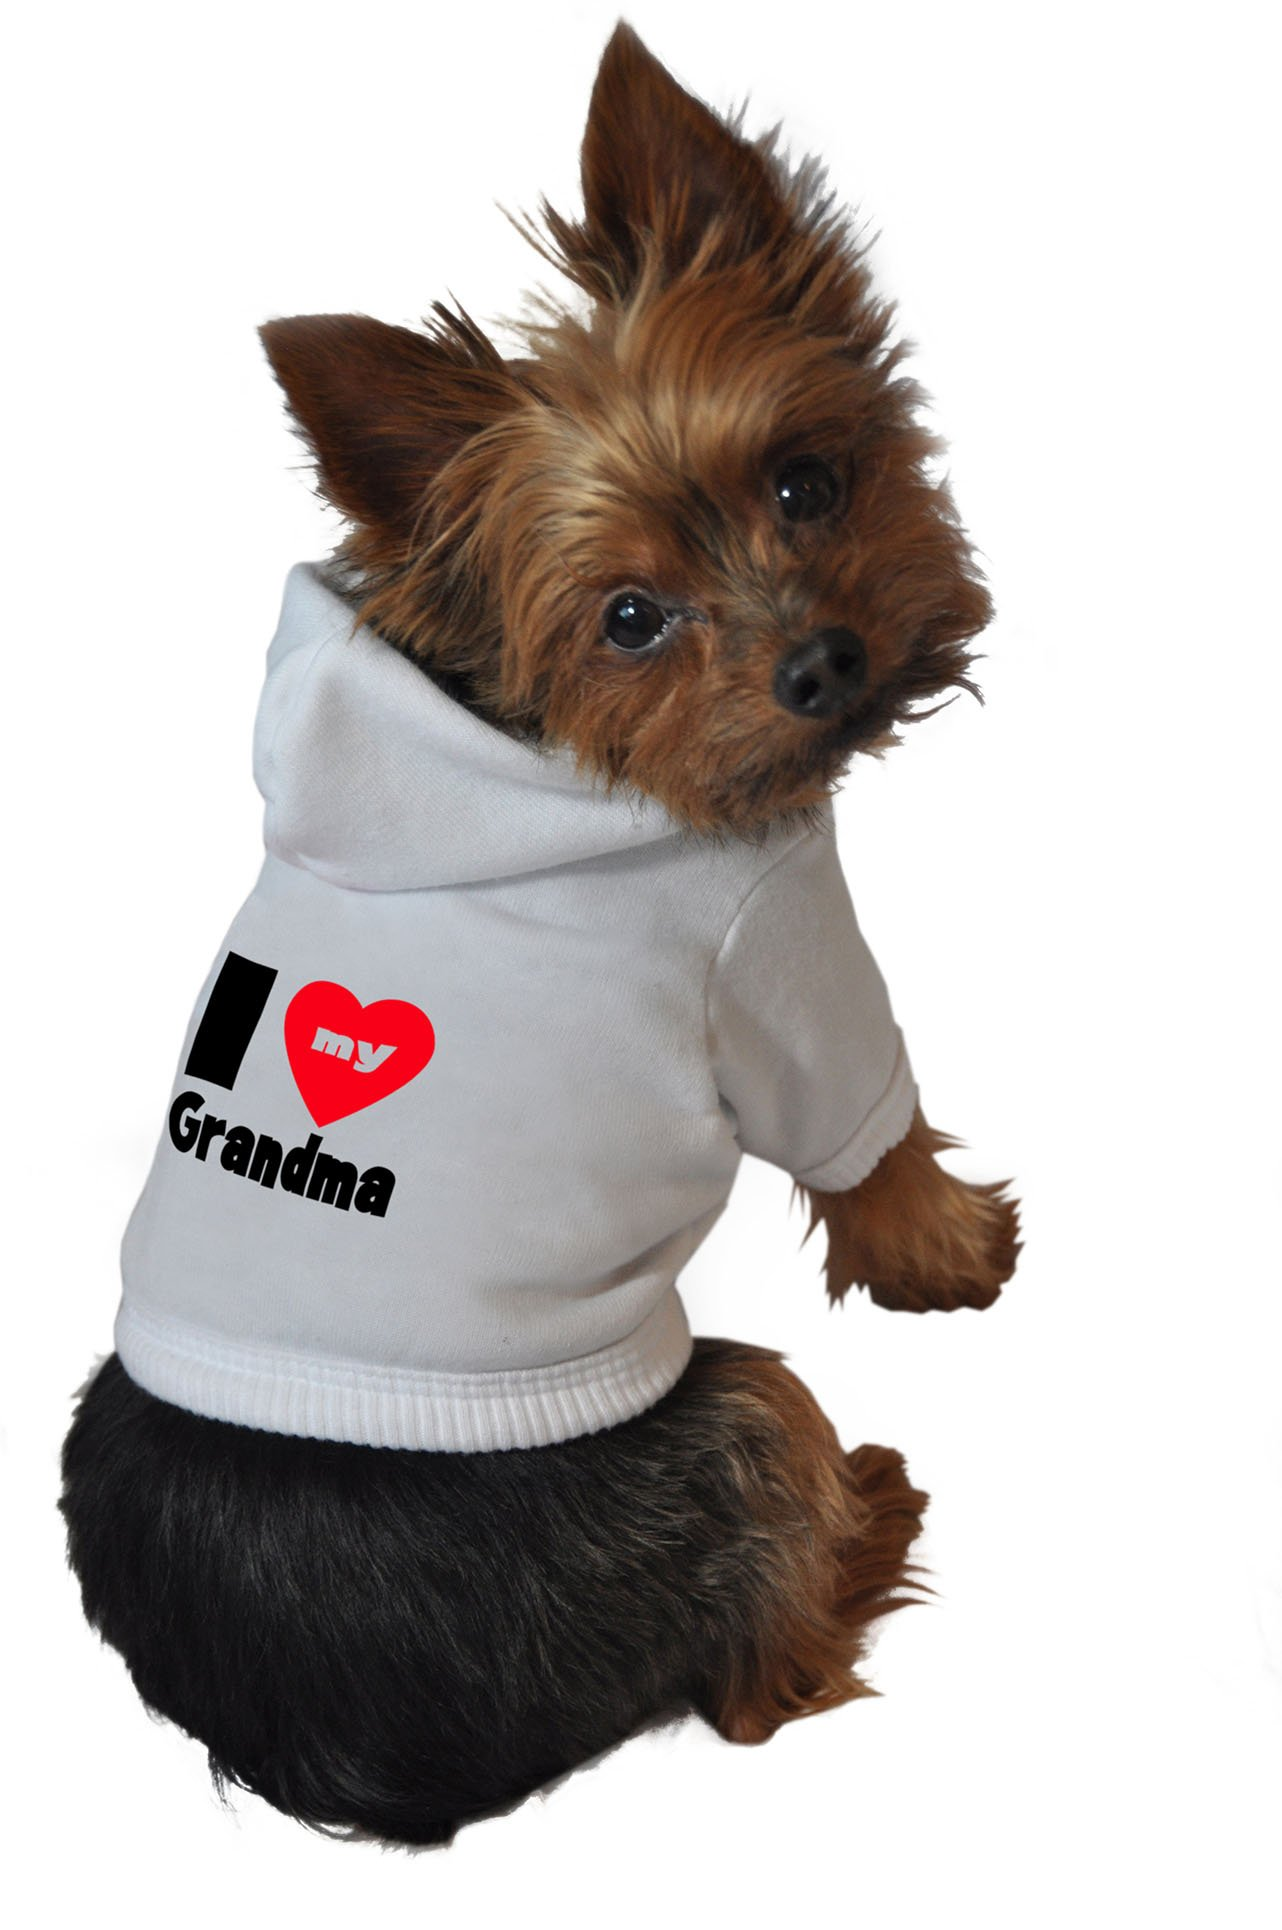 Ruff Ruff and Meow Dog Hoodie, I Love My Grandma, White, Small by Ruff Ruff and Meow